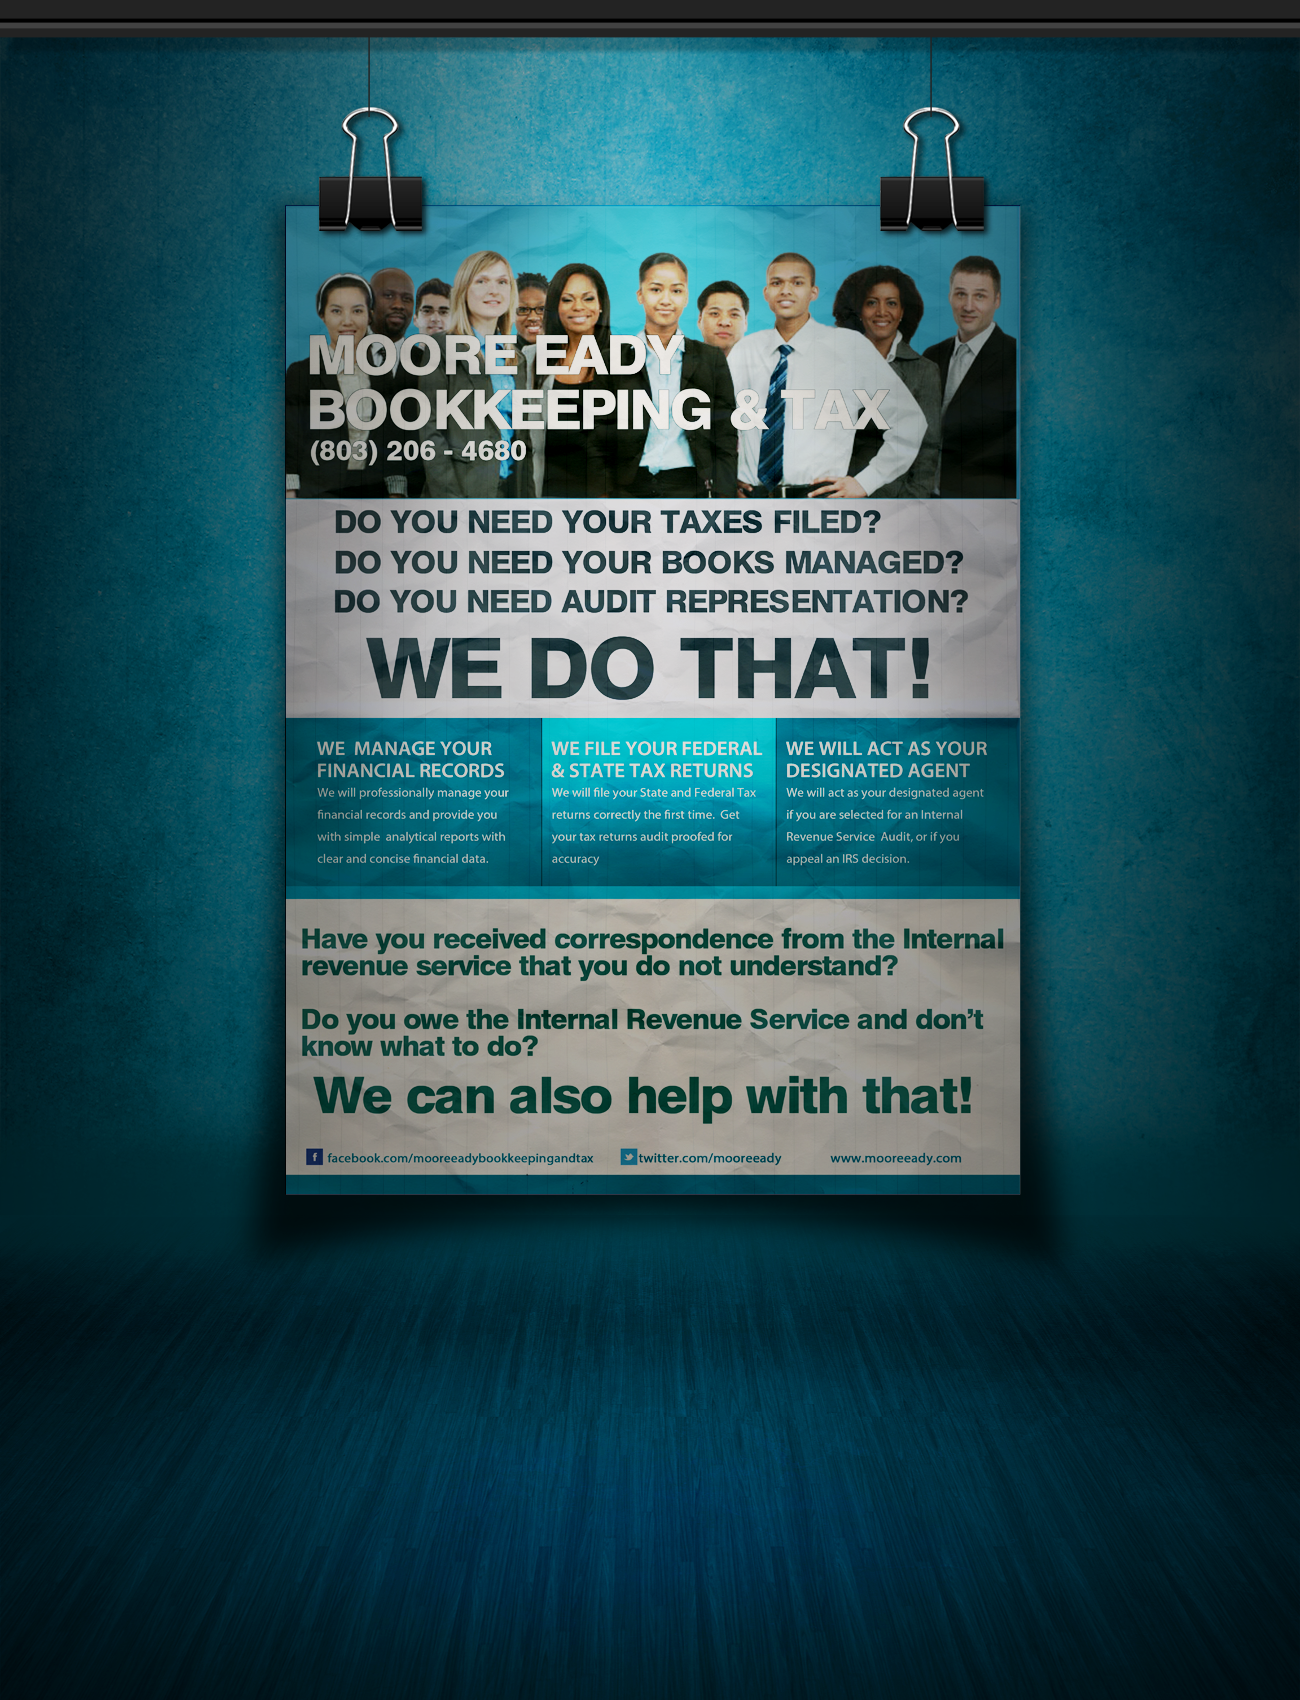 business tax refund financial service flyer template tax refund the official moore eady bookkeeping tax flyer 2013